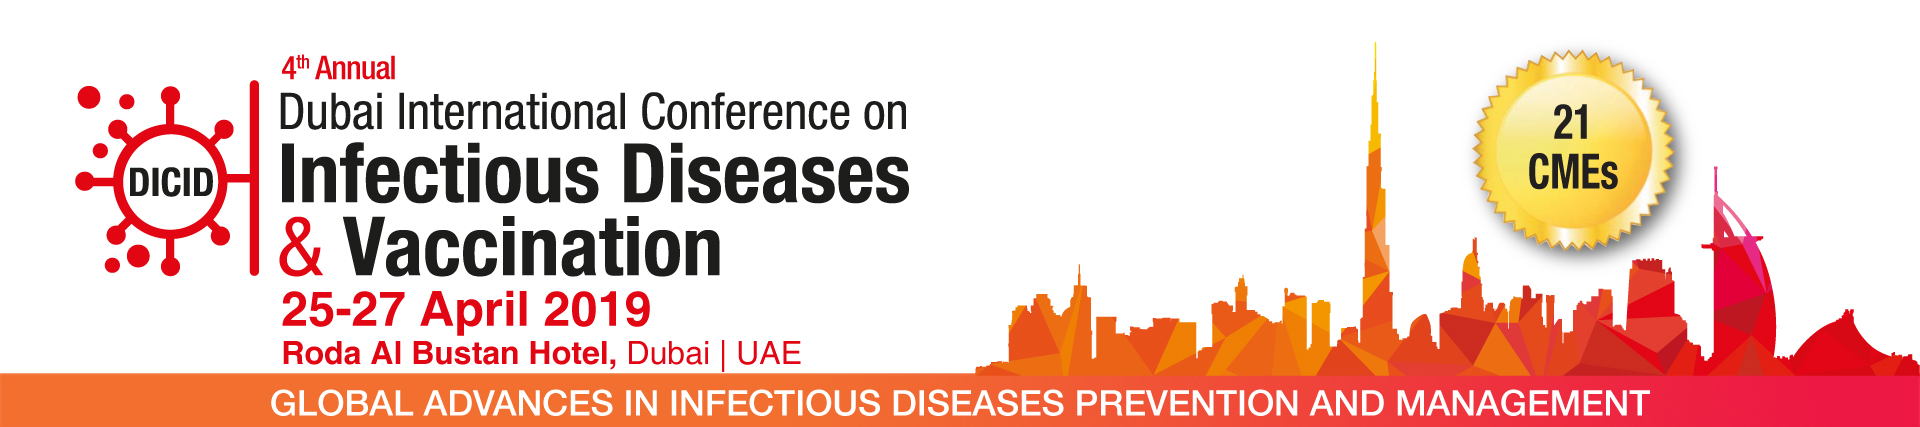 4th Annual Dubai International Conference on Infectious Diseases and Vaccination 2019